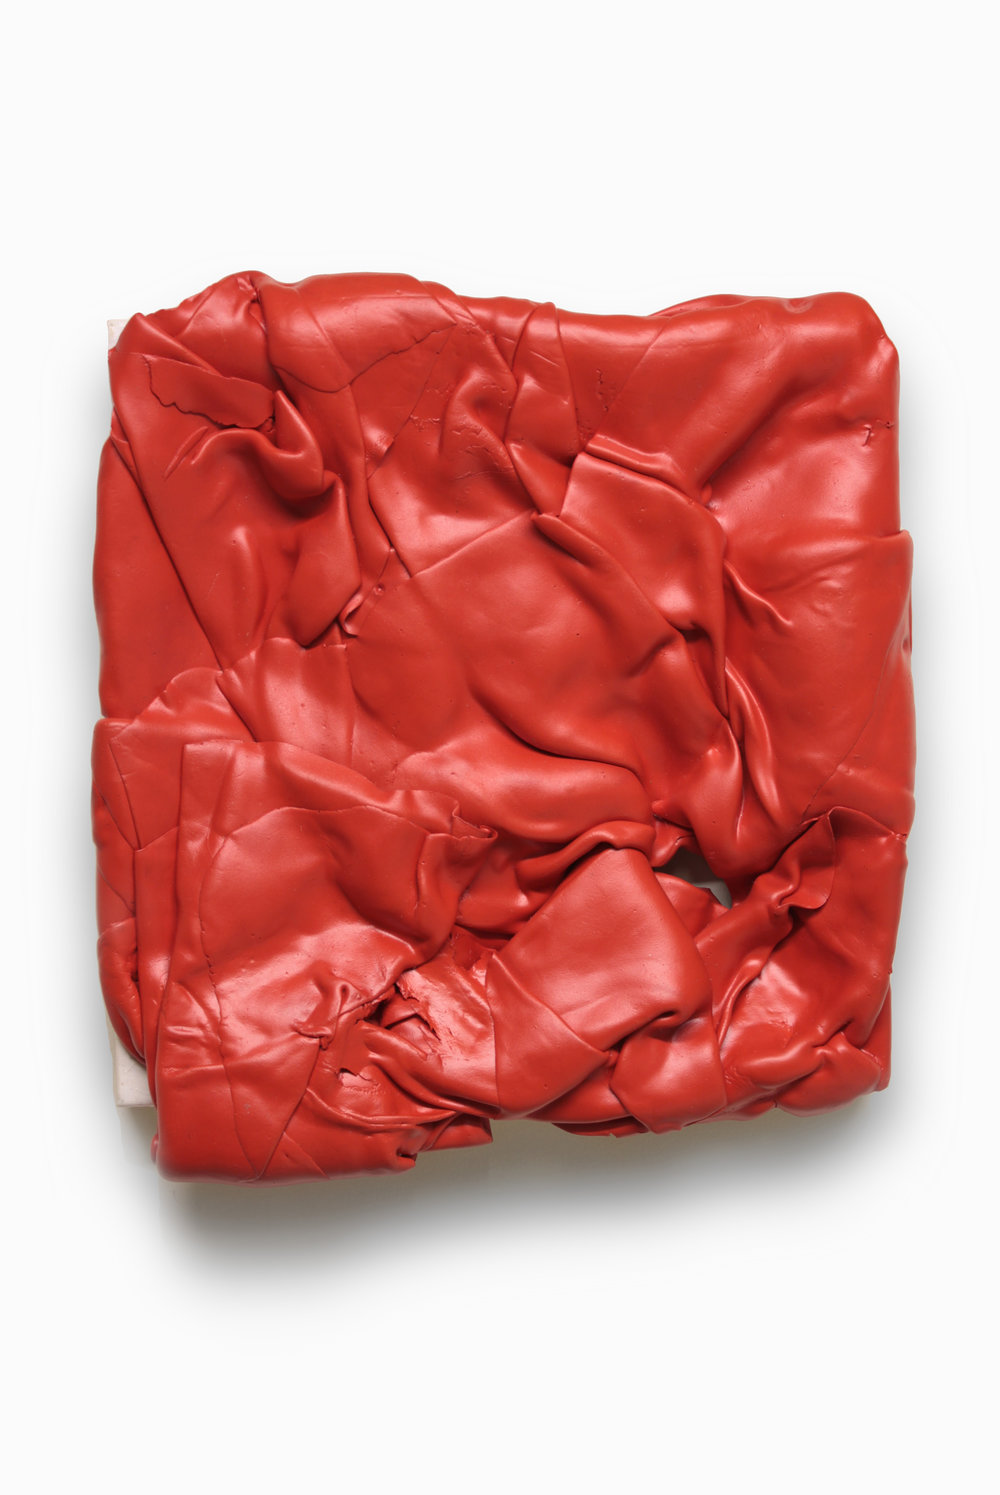 Untitled (Red)  , 2015  Acrilico sobre lienzo  33 x 35 x 7,5 cm